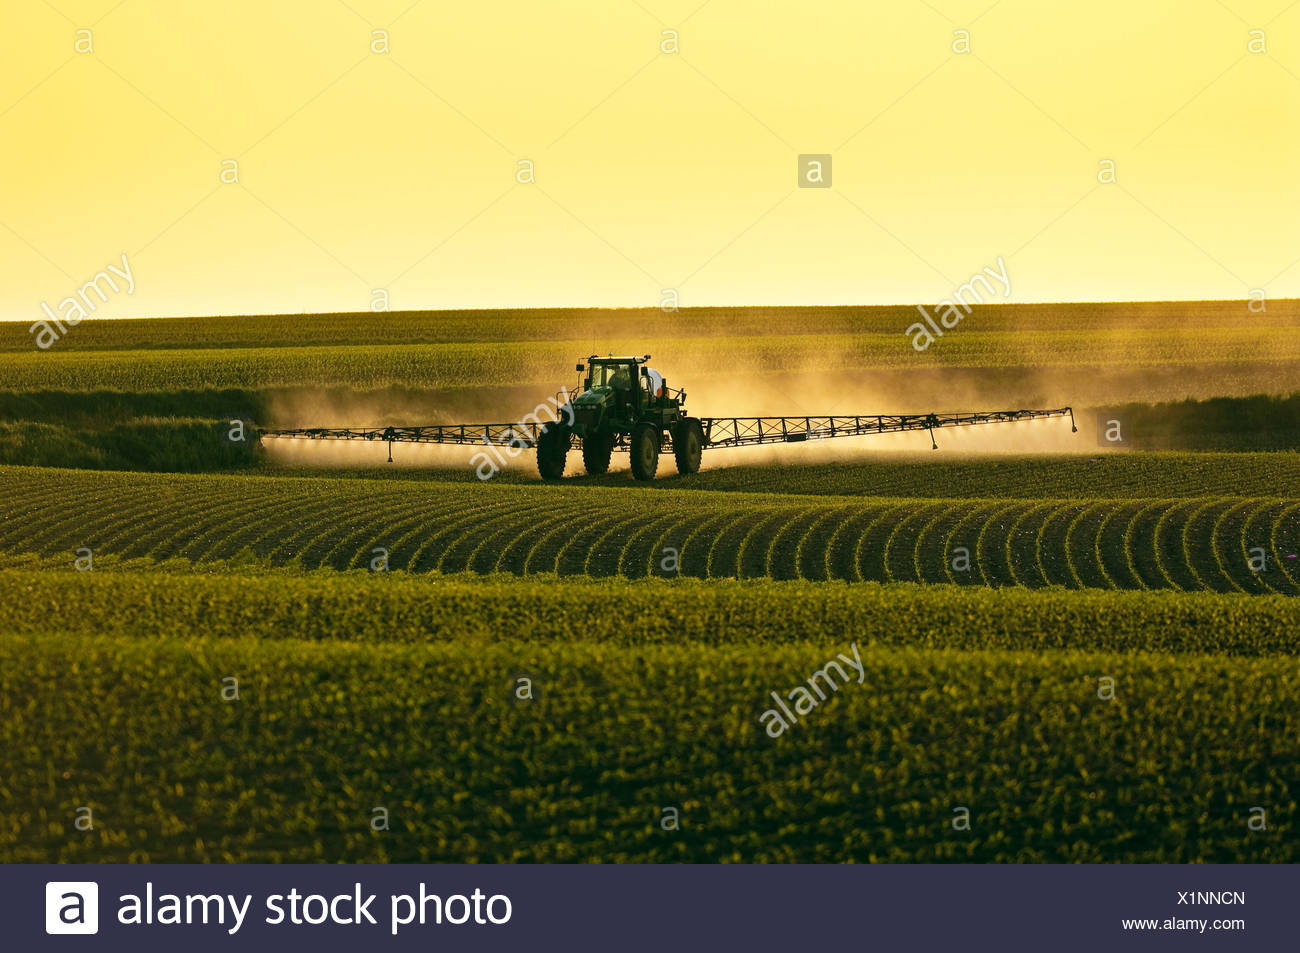 Post-emergent herbicide being applied to an early growth grain corn field by a John Deere sprayer in late afternoon light / Iowa - Stock Image